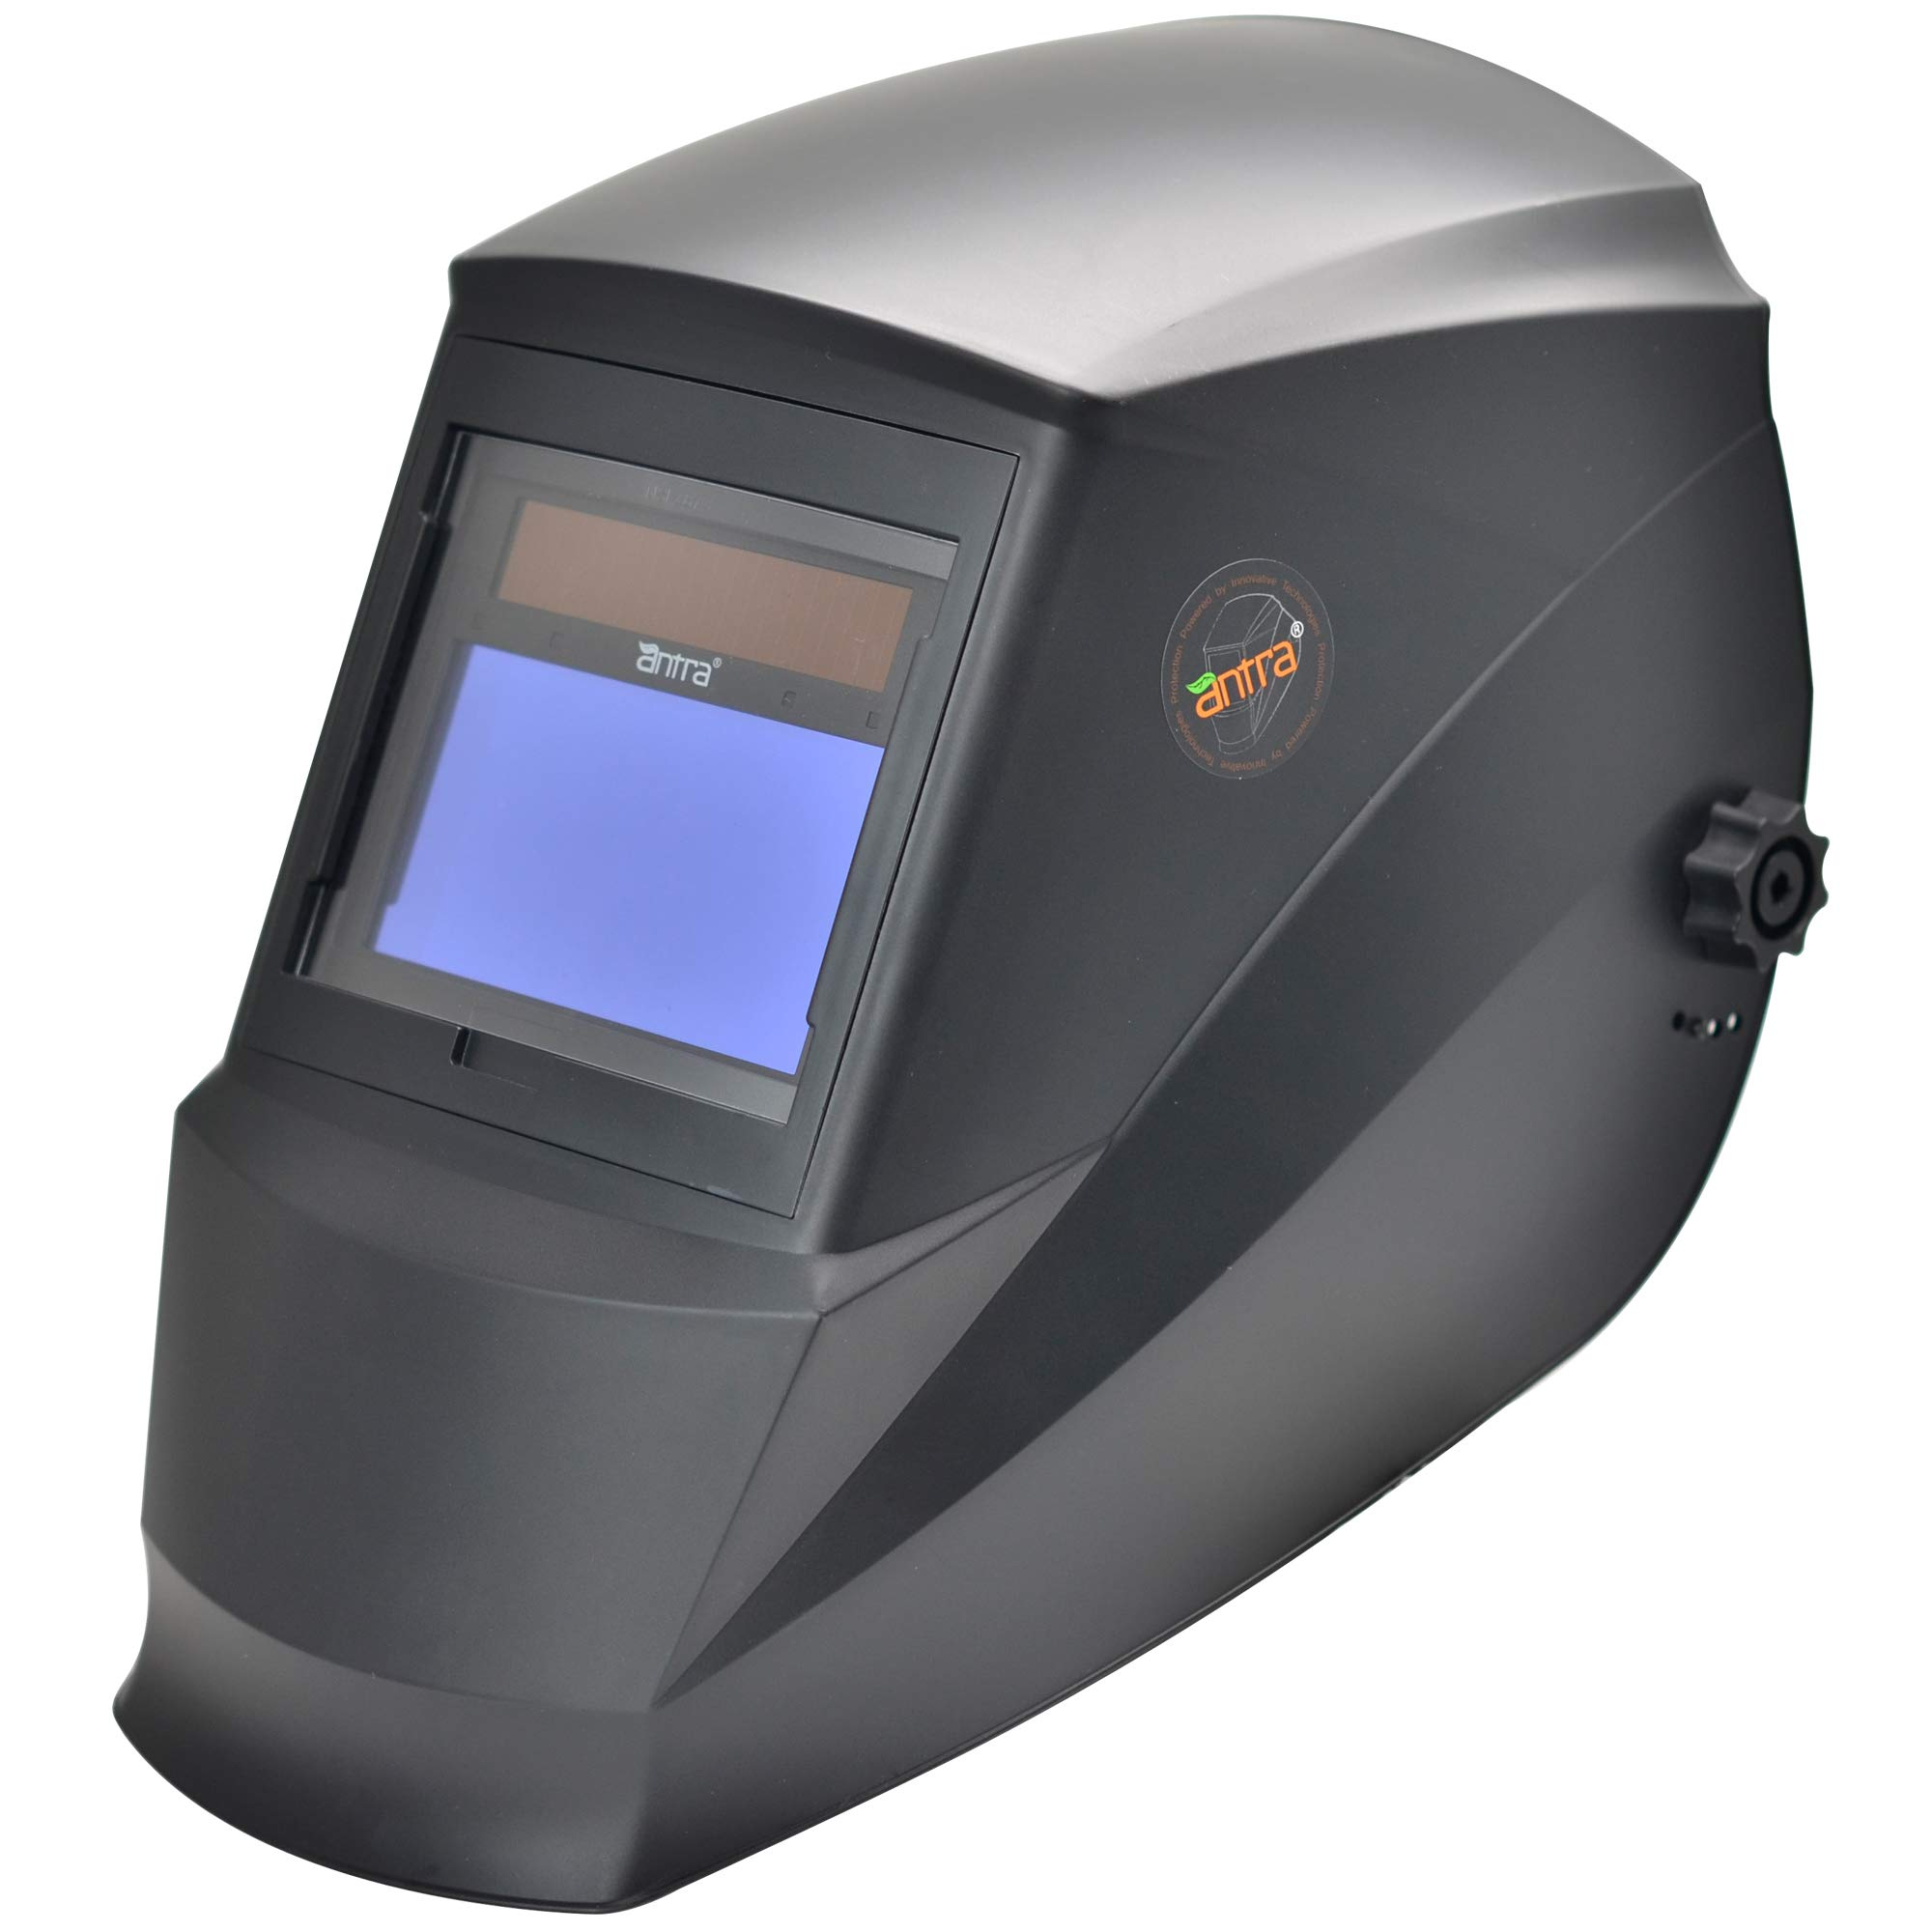 Antra Welding Helmet Auto Darkening AH7-360-0000, Dual Power Solar+ Battery, Wide Shade Range 4/5-9/9-13 with Grinding, 6+1 Extra Lens Covers, Stable for TIG MIG MMA Plasma